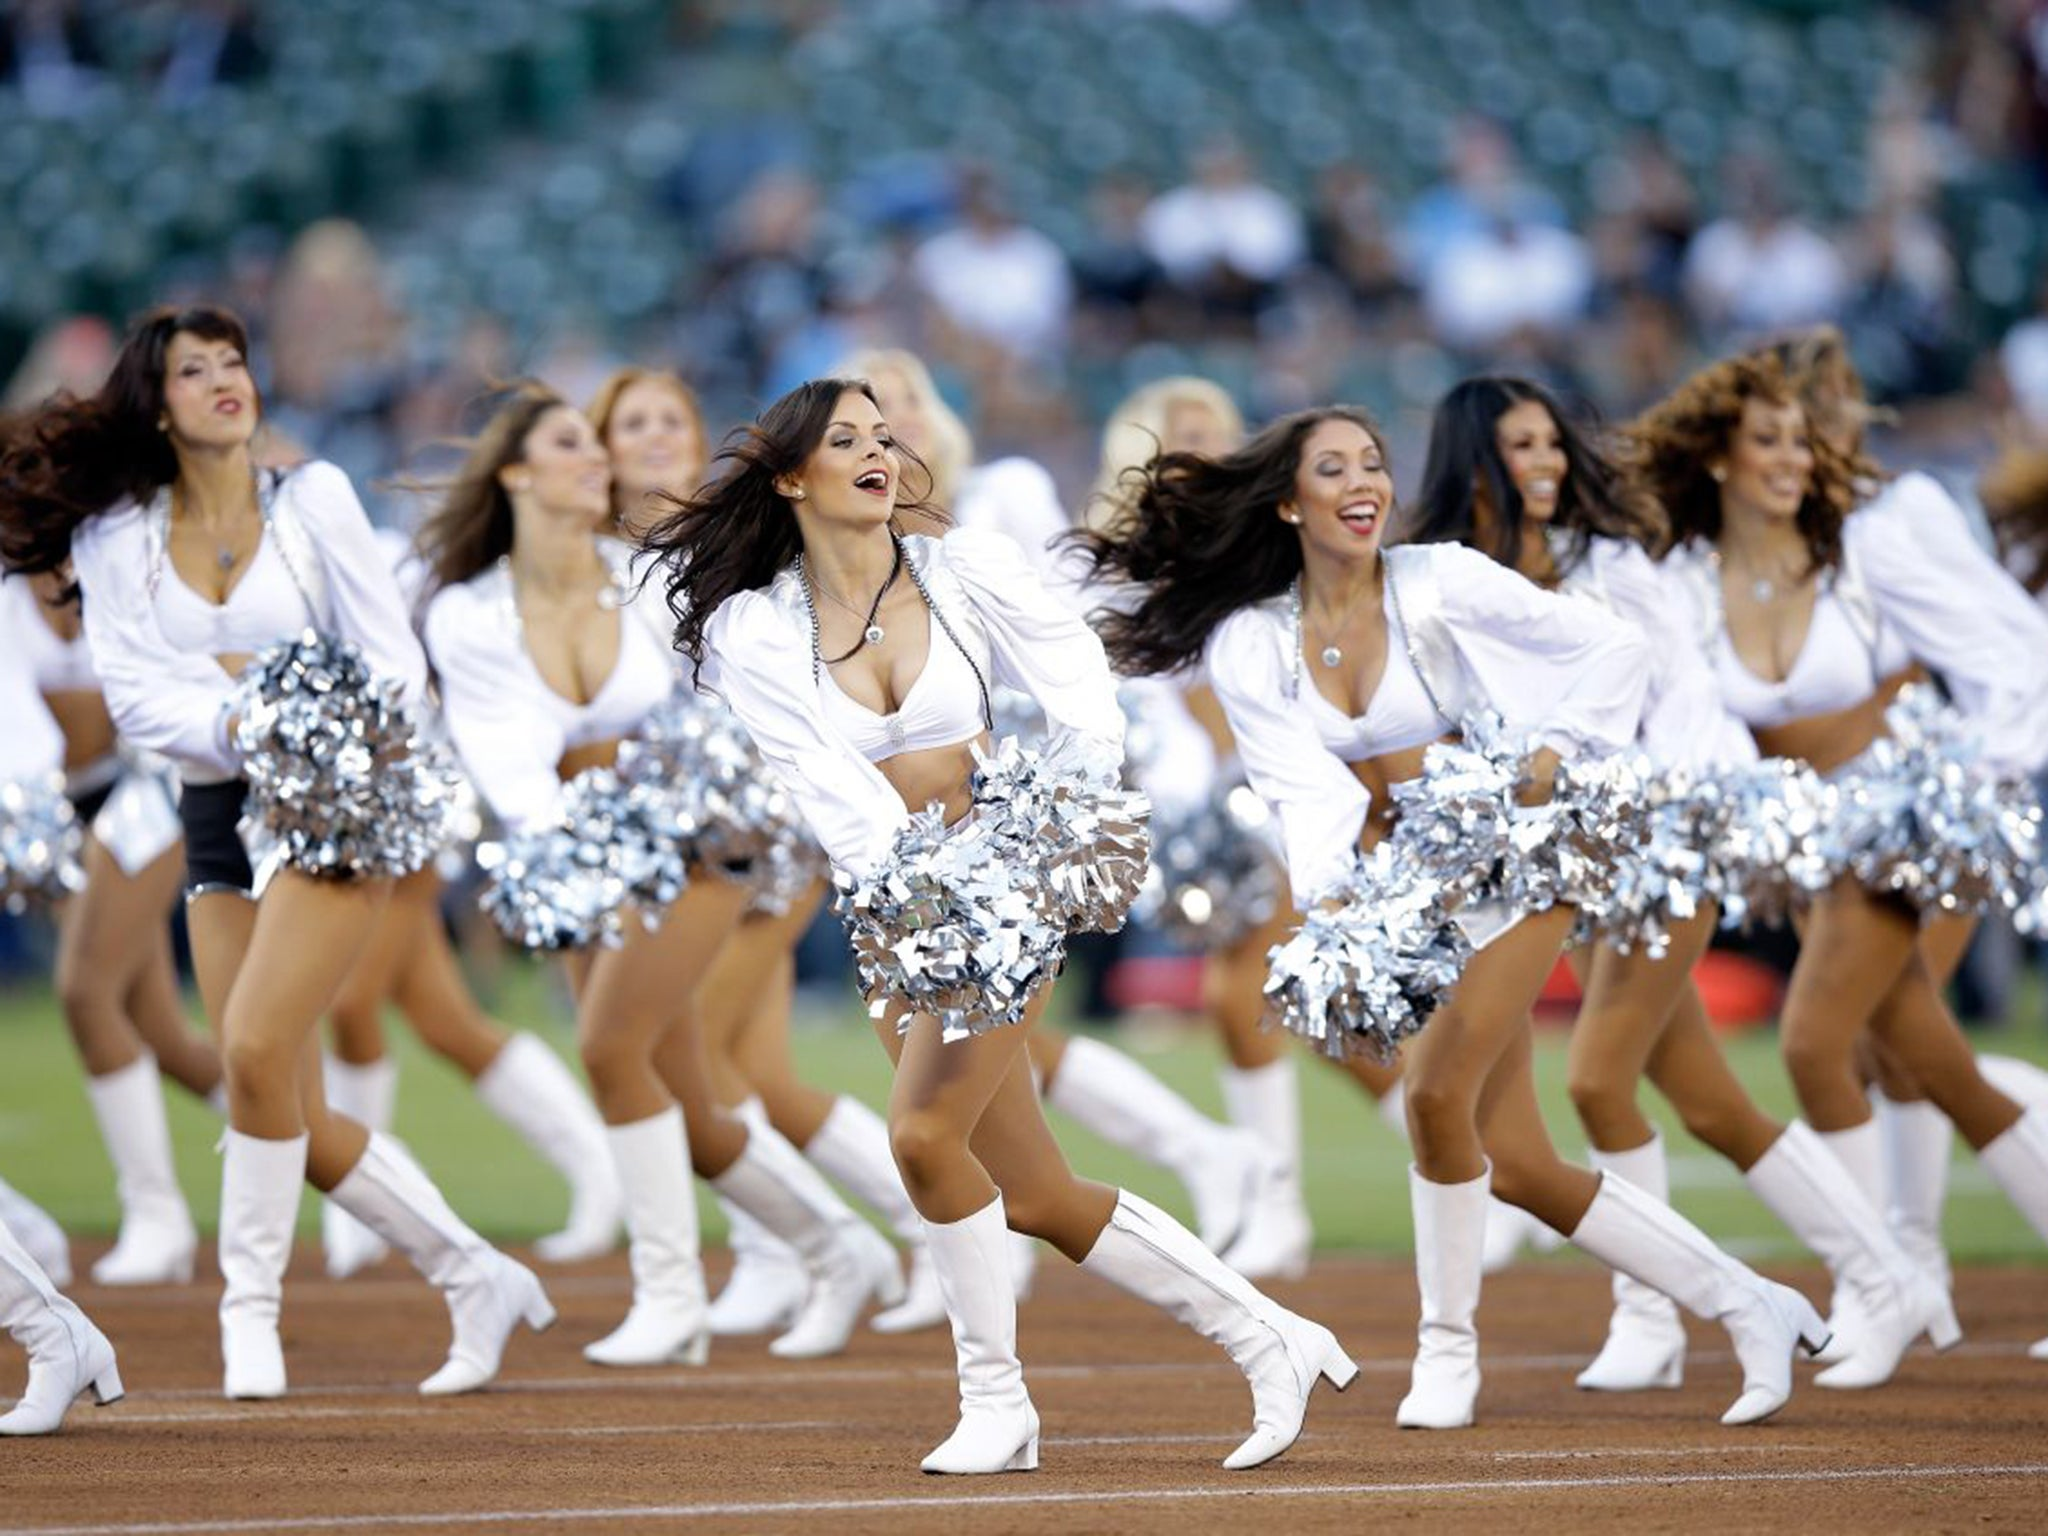 Oakland raiderettes cheerleaders celebrate new laws that mean oakland raiderettes cheerleaders celebrate new laws that mean they will be treated as employees the independent voltagebd Image collections